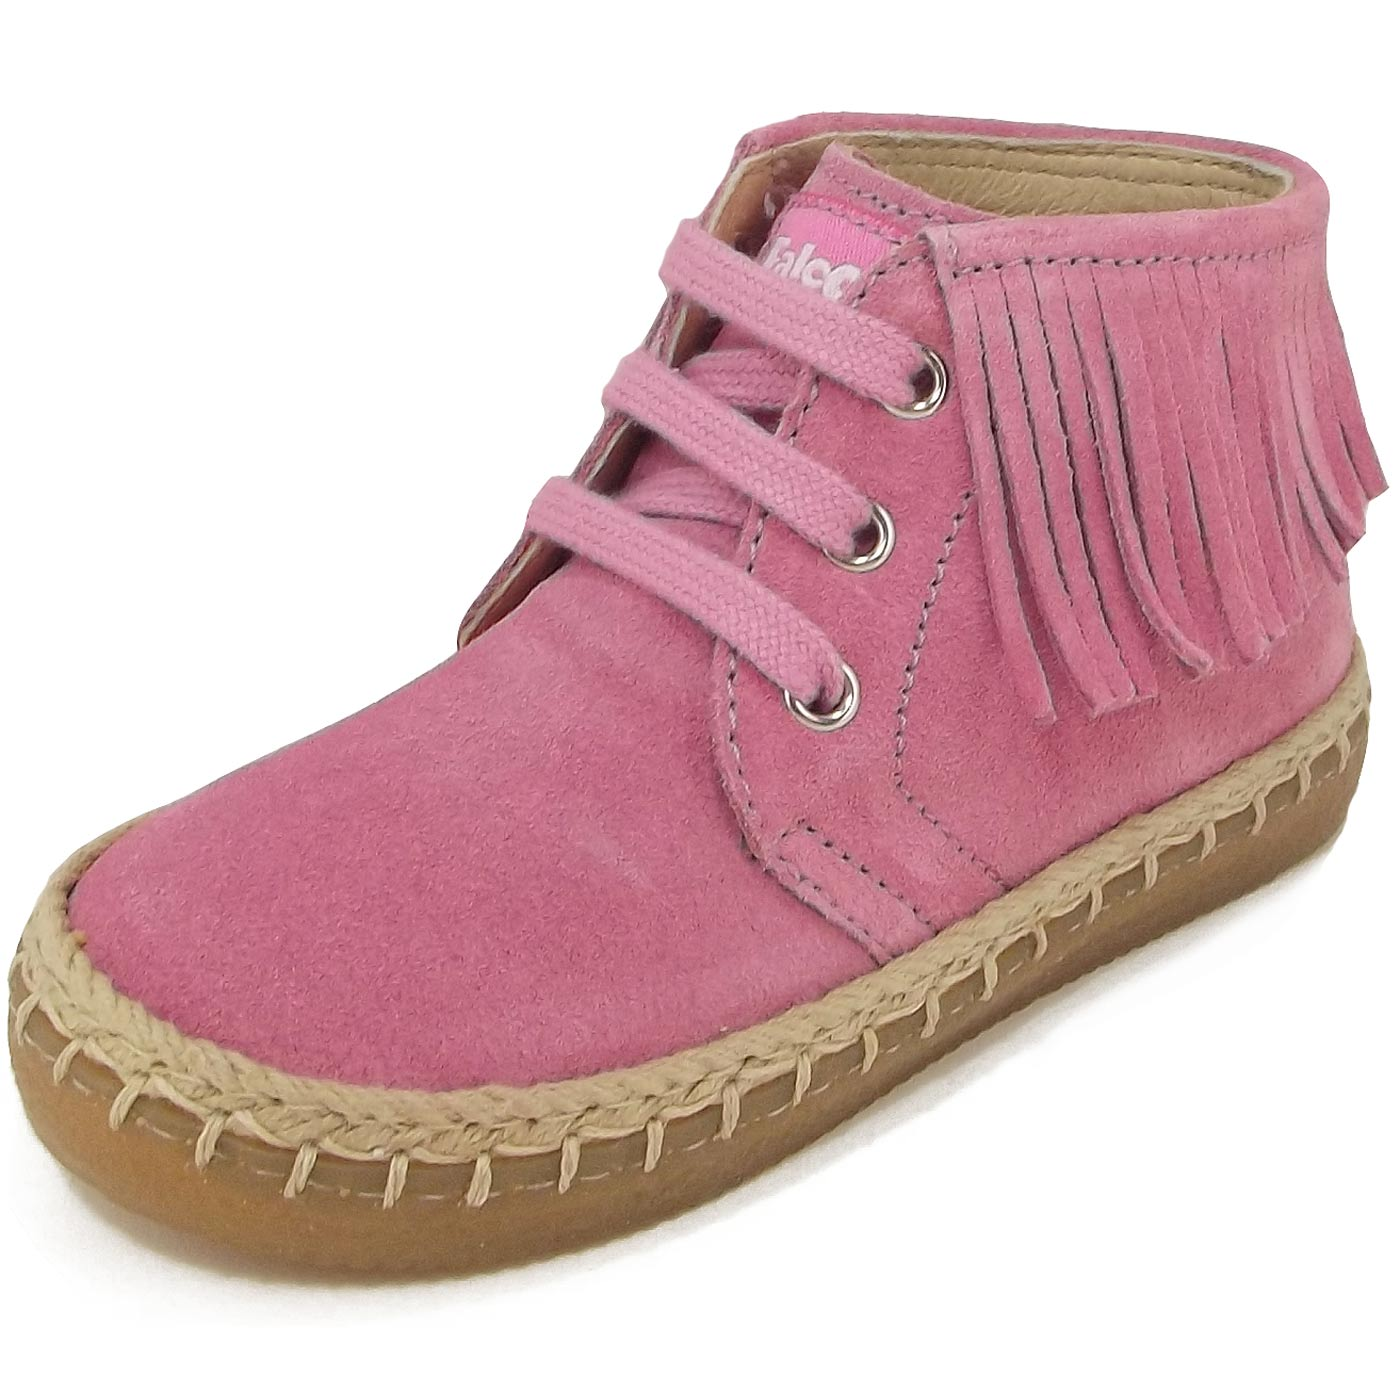 reputable site 96aca ceaa8 Falcotto by Naturino 1526 Girl Lace-Up Shoes rose (rosa)